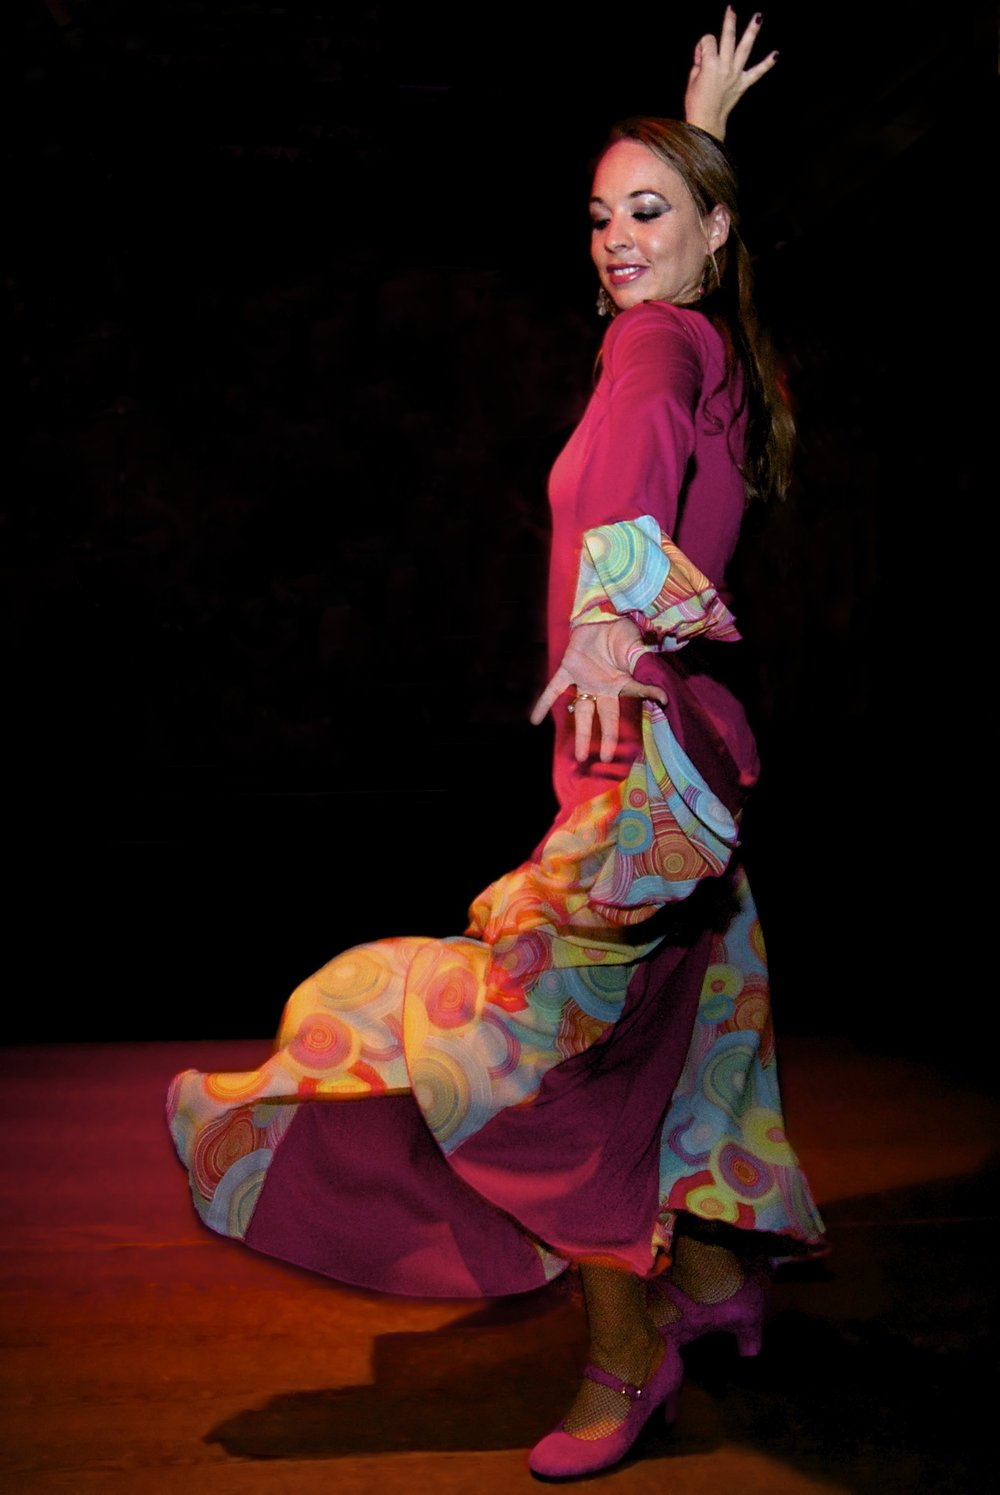 vanessa-12-08-2011-flamenco-33427-alt-version.jpg